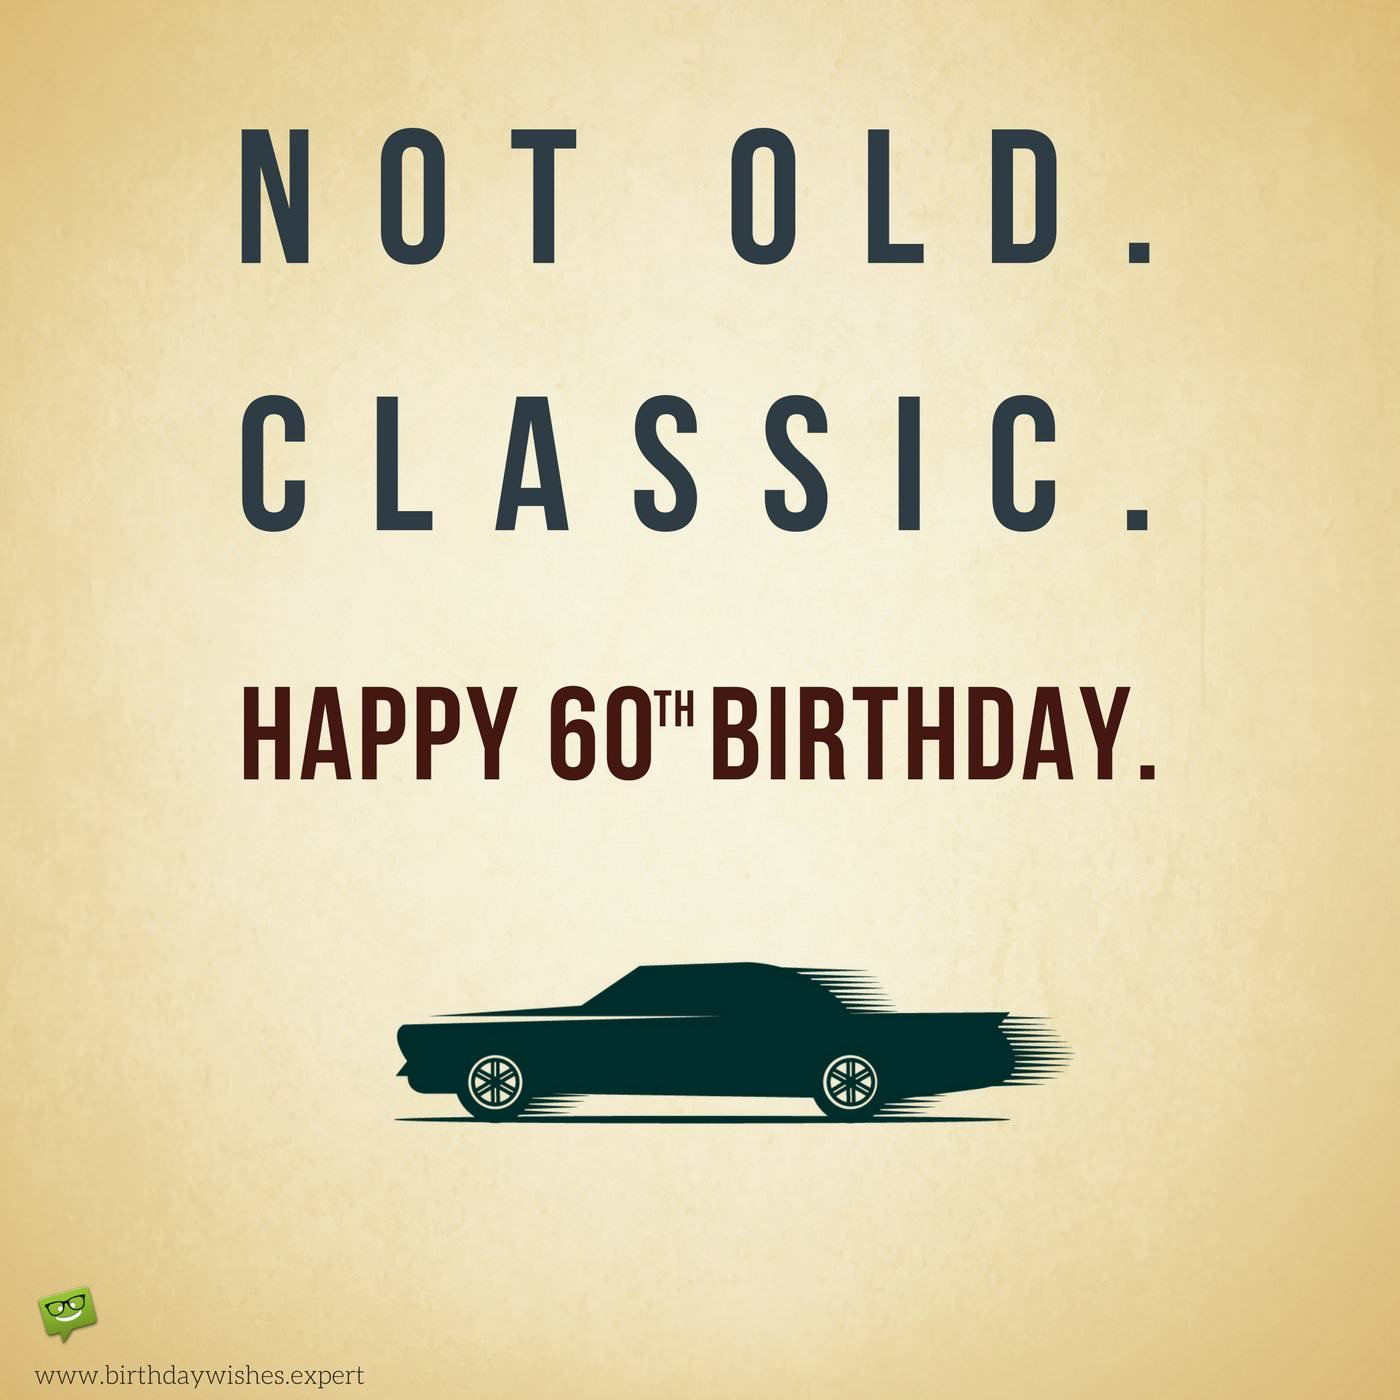 Happy 60th Birthday Wishes Not Old Classic